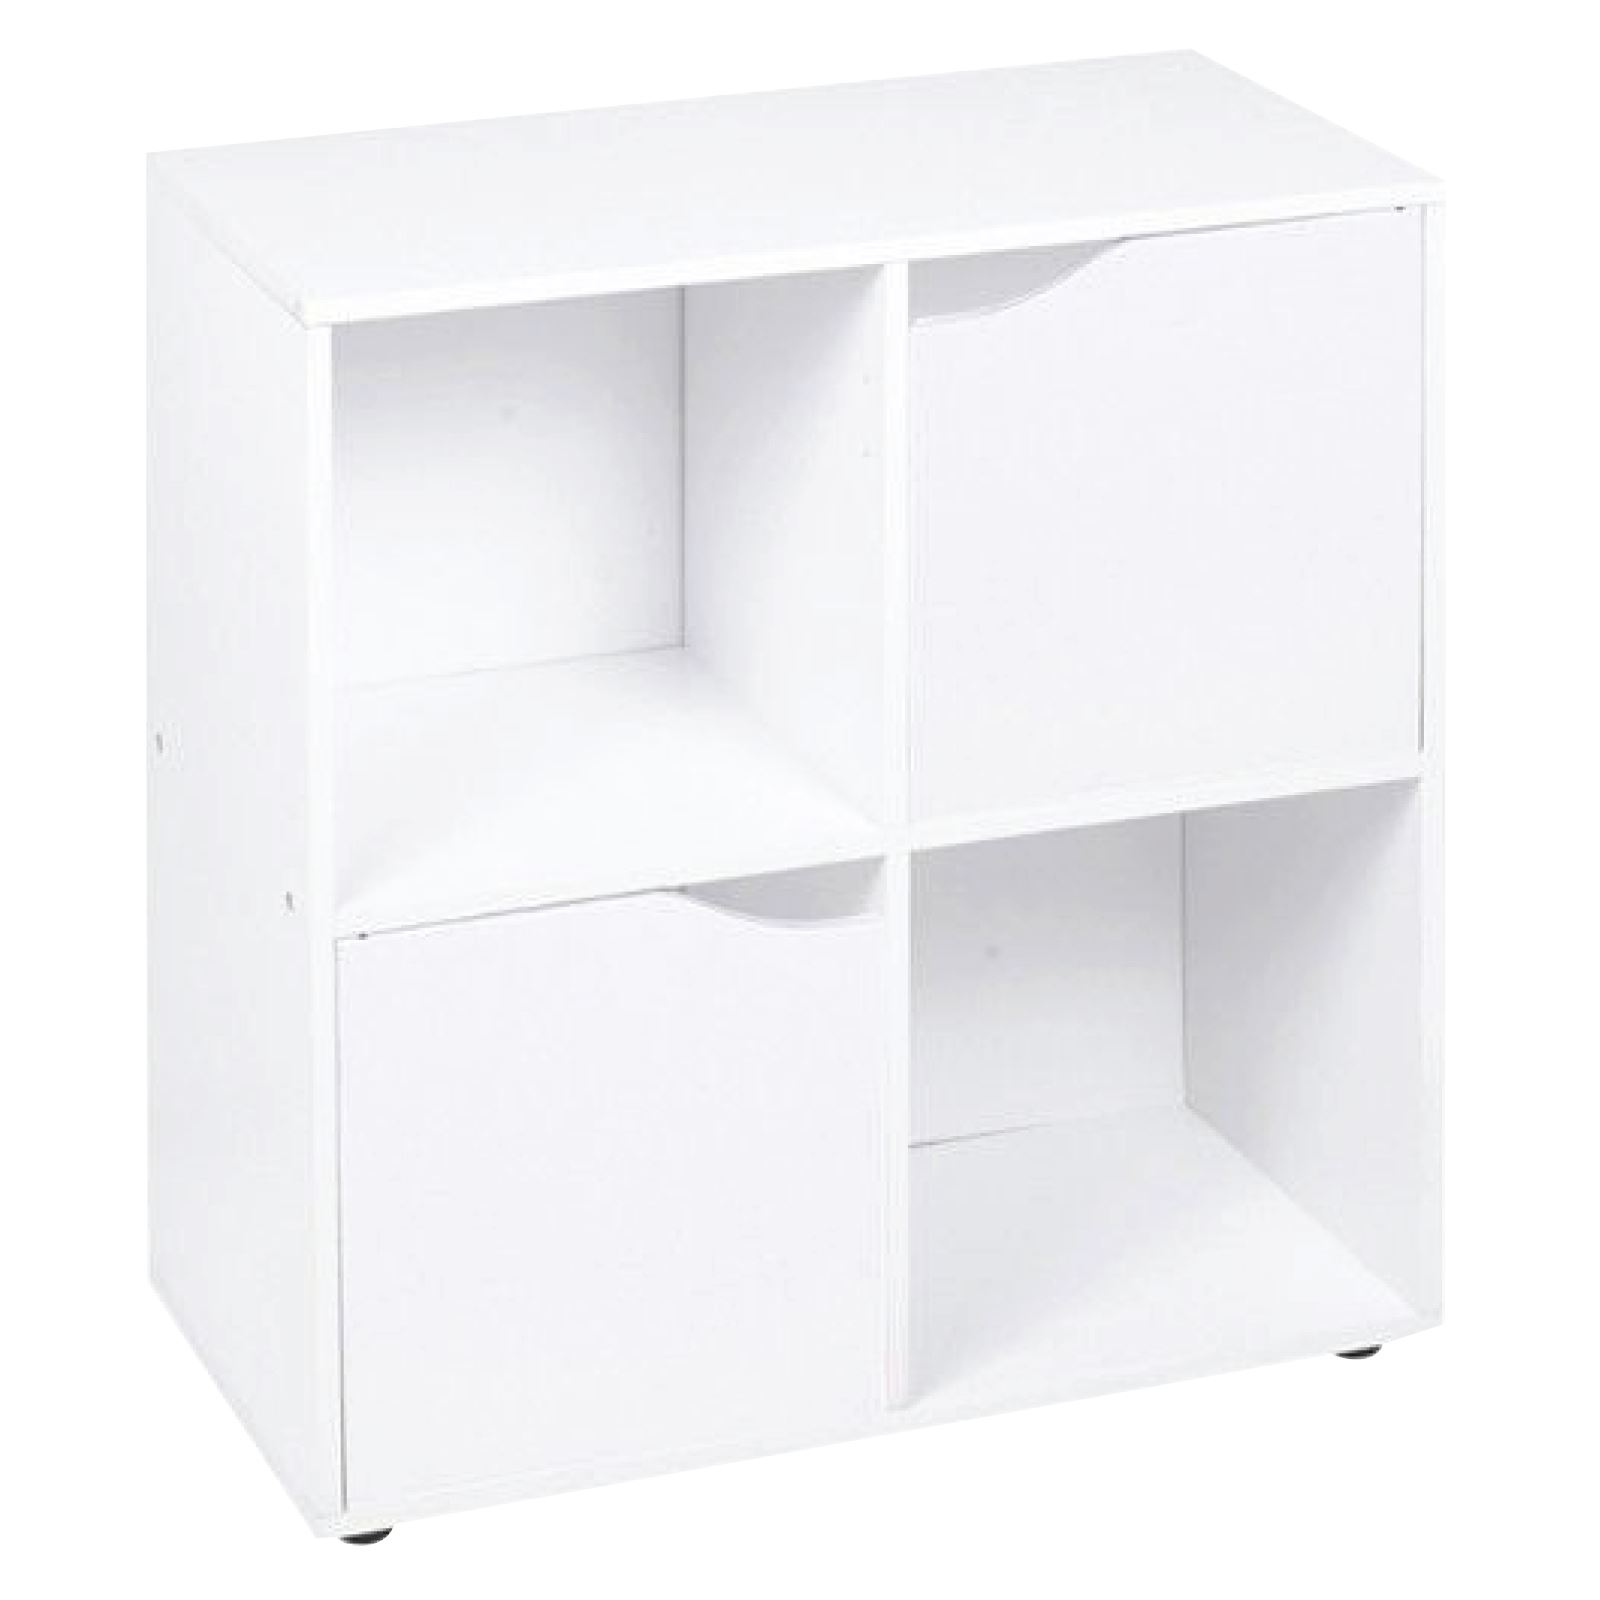 Do It Yourself Home Design: 4 6 9 Cube Wooden Storage Unit Bookcase Shelving Display